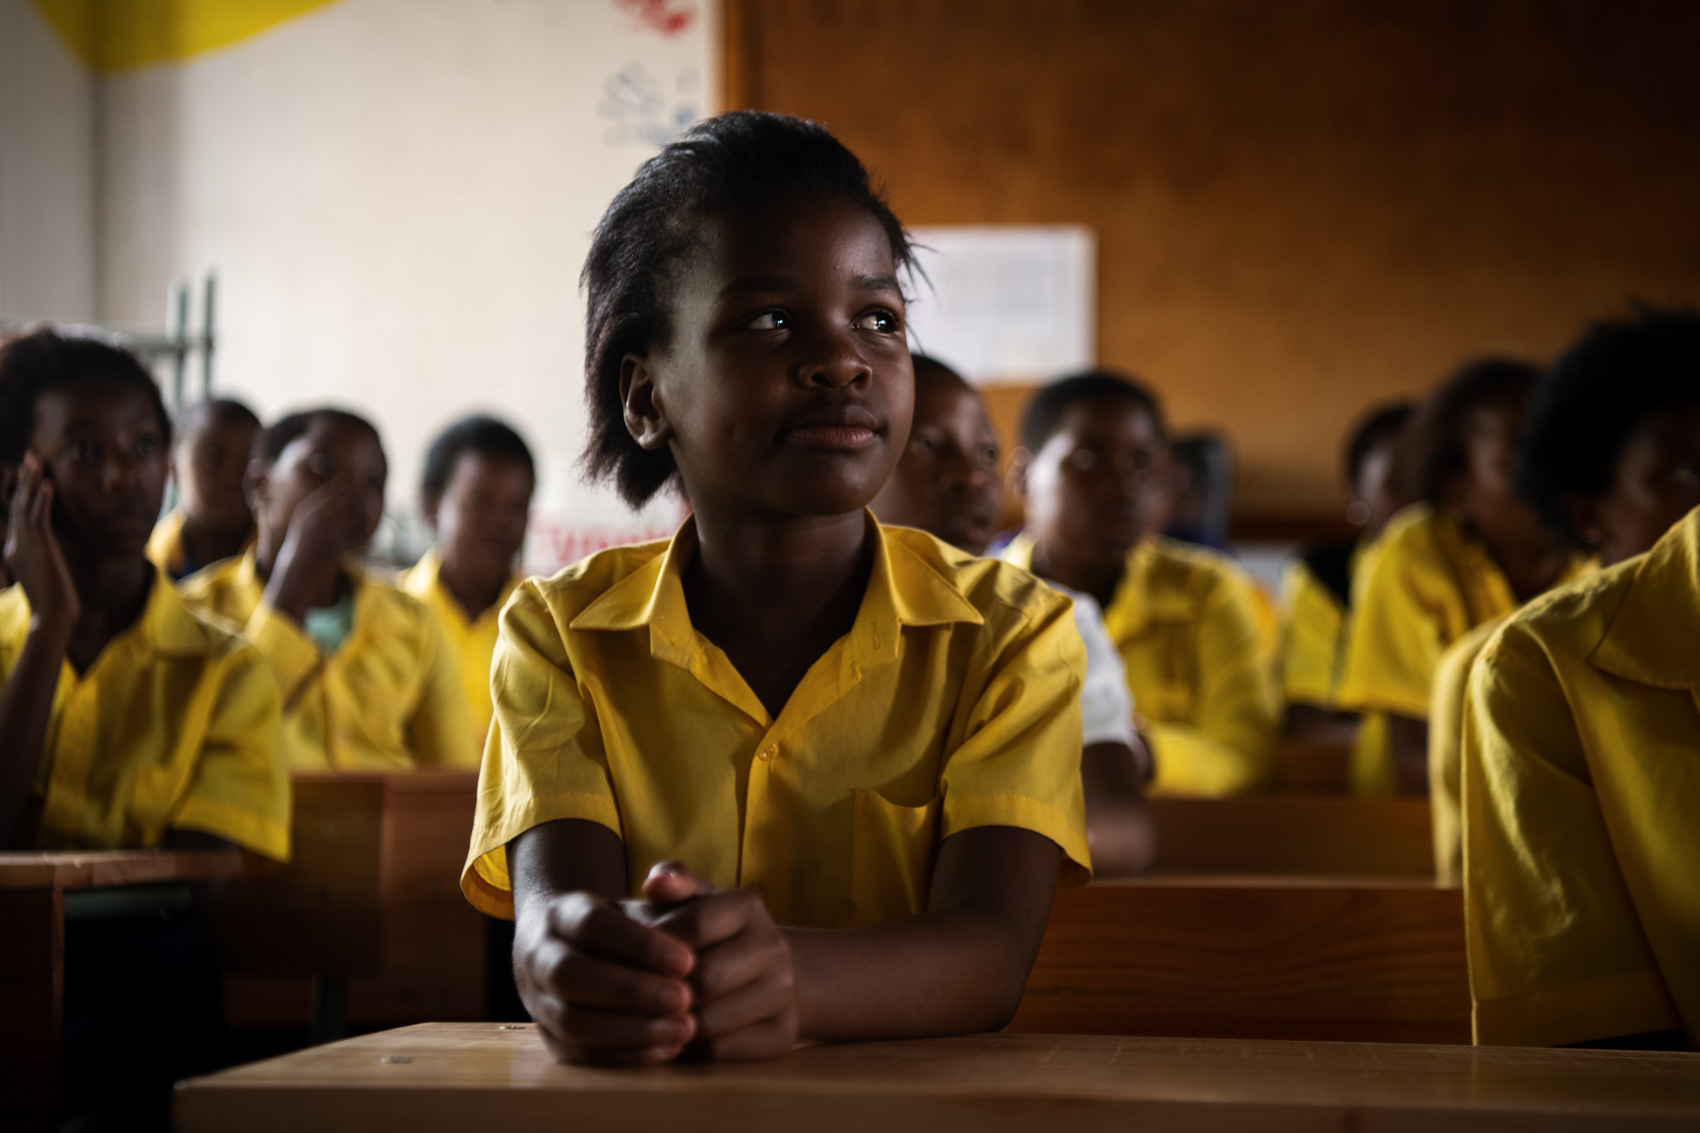 An African school girl in uniform looks on with classmates behind her in South Africa